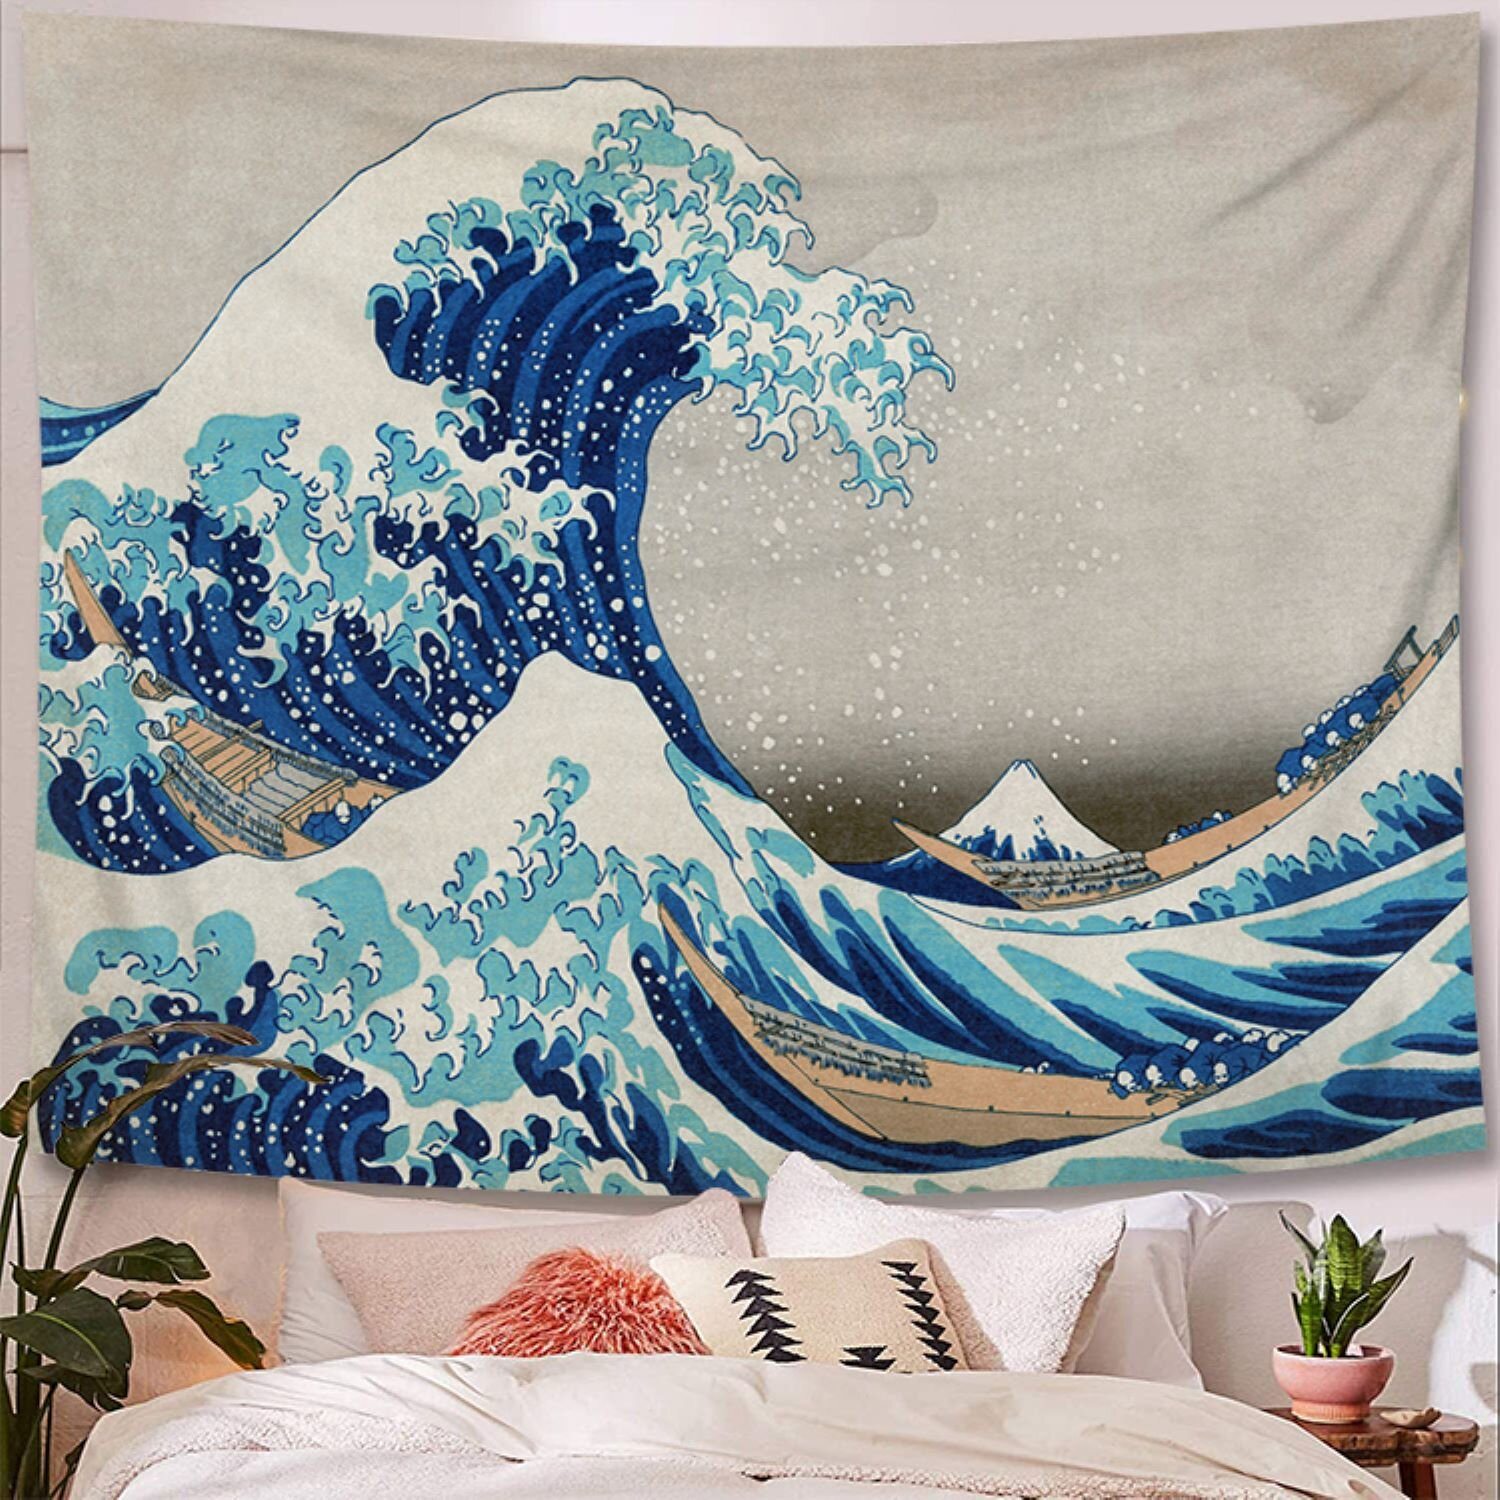 Great Wave Kanagawa Polyester Tapestry With Hanging Accessories Included With Recent Blended Fabric Clancy Wool And Cotton Wall Hangings With Hanging Accessories Included (View 16 of 20)